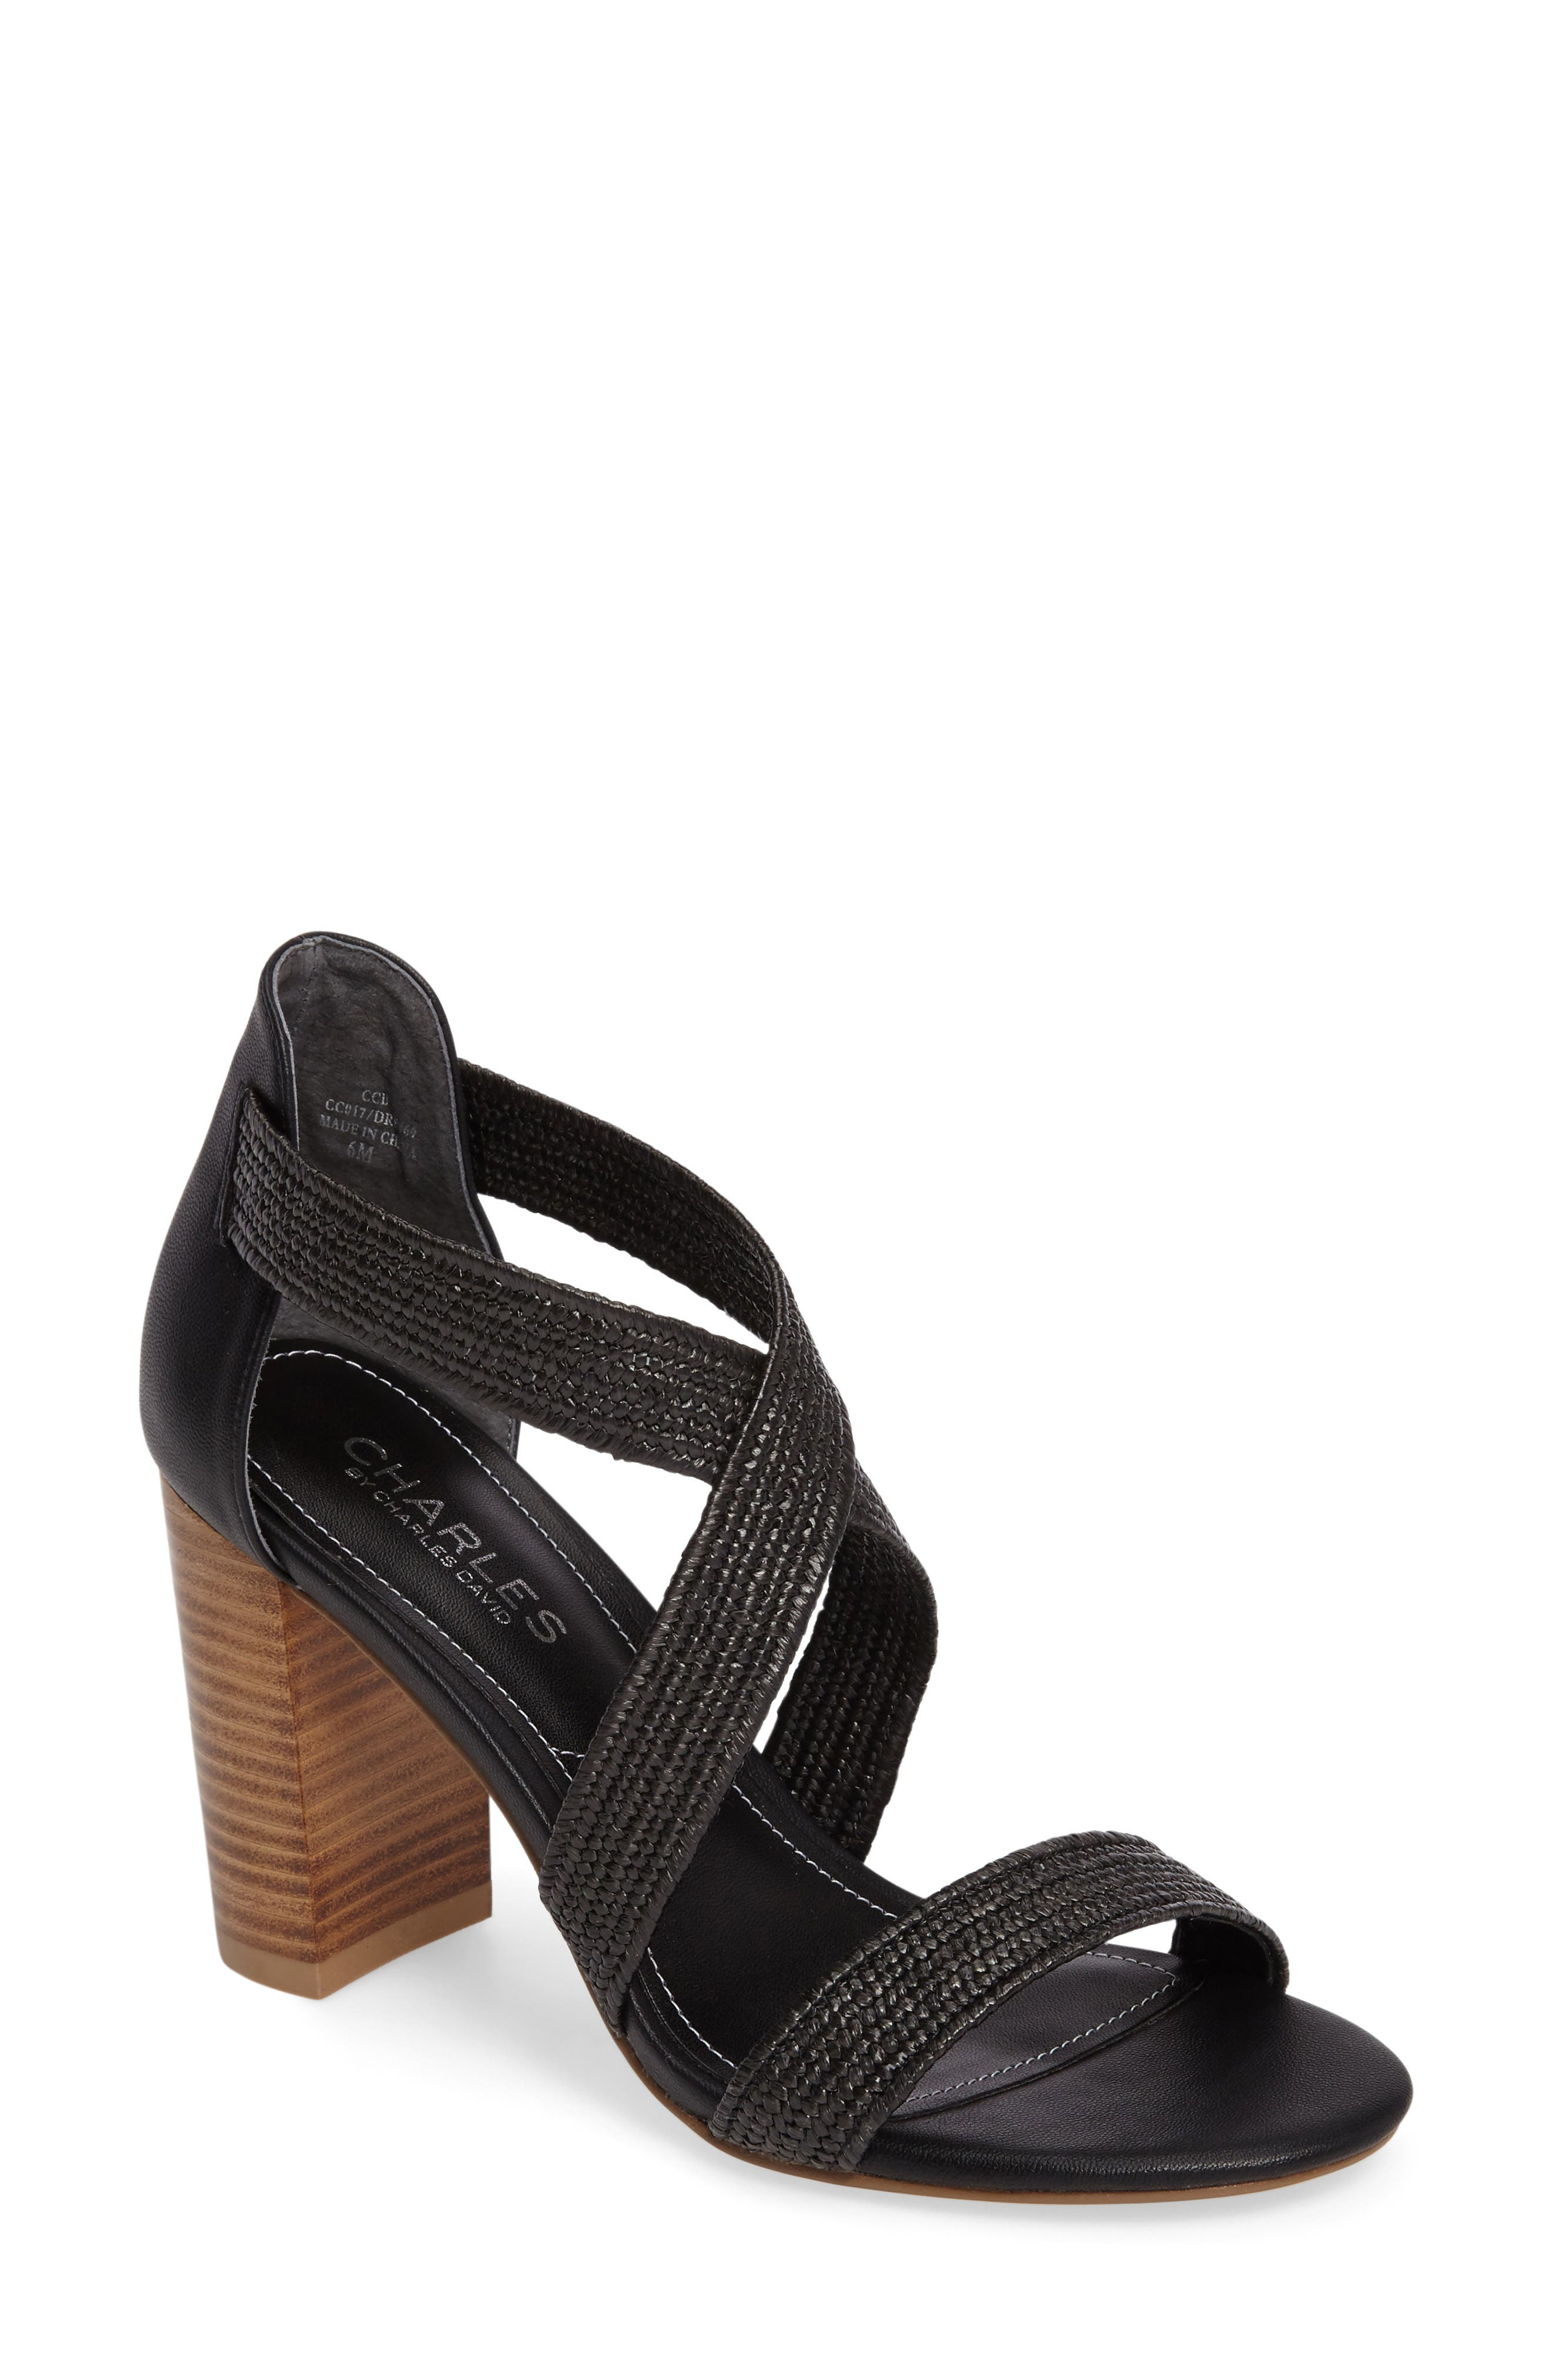 Alternate Image 1 Selected - Charles by Charles David Emily Strappy Sandal (Women)